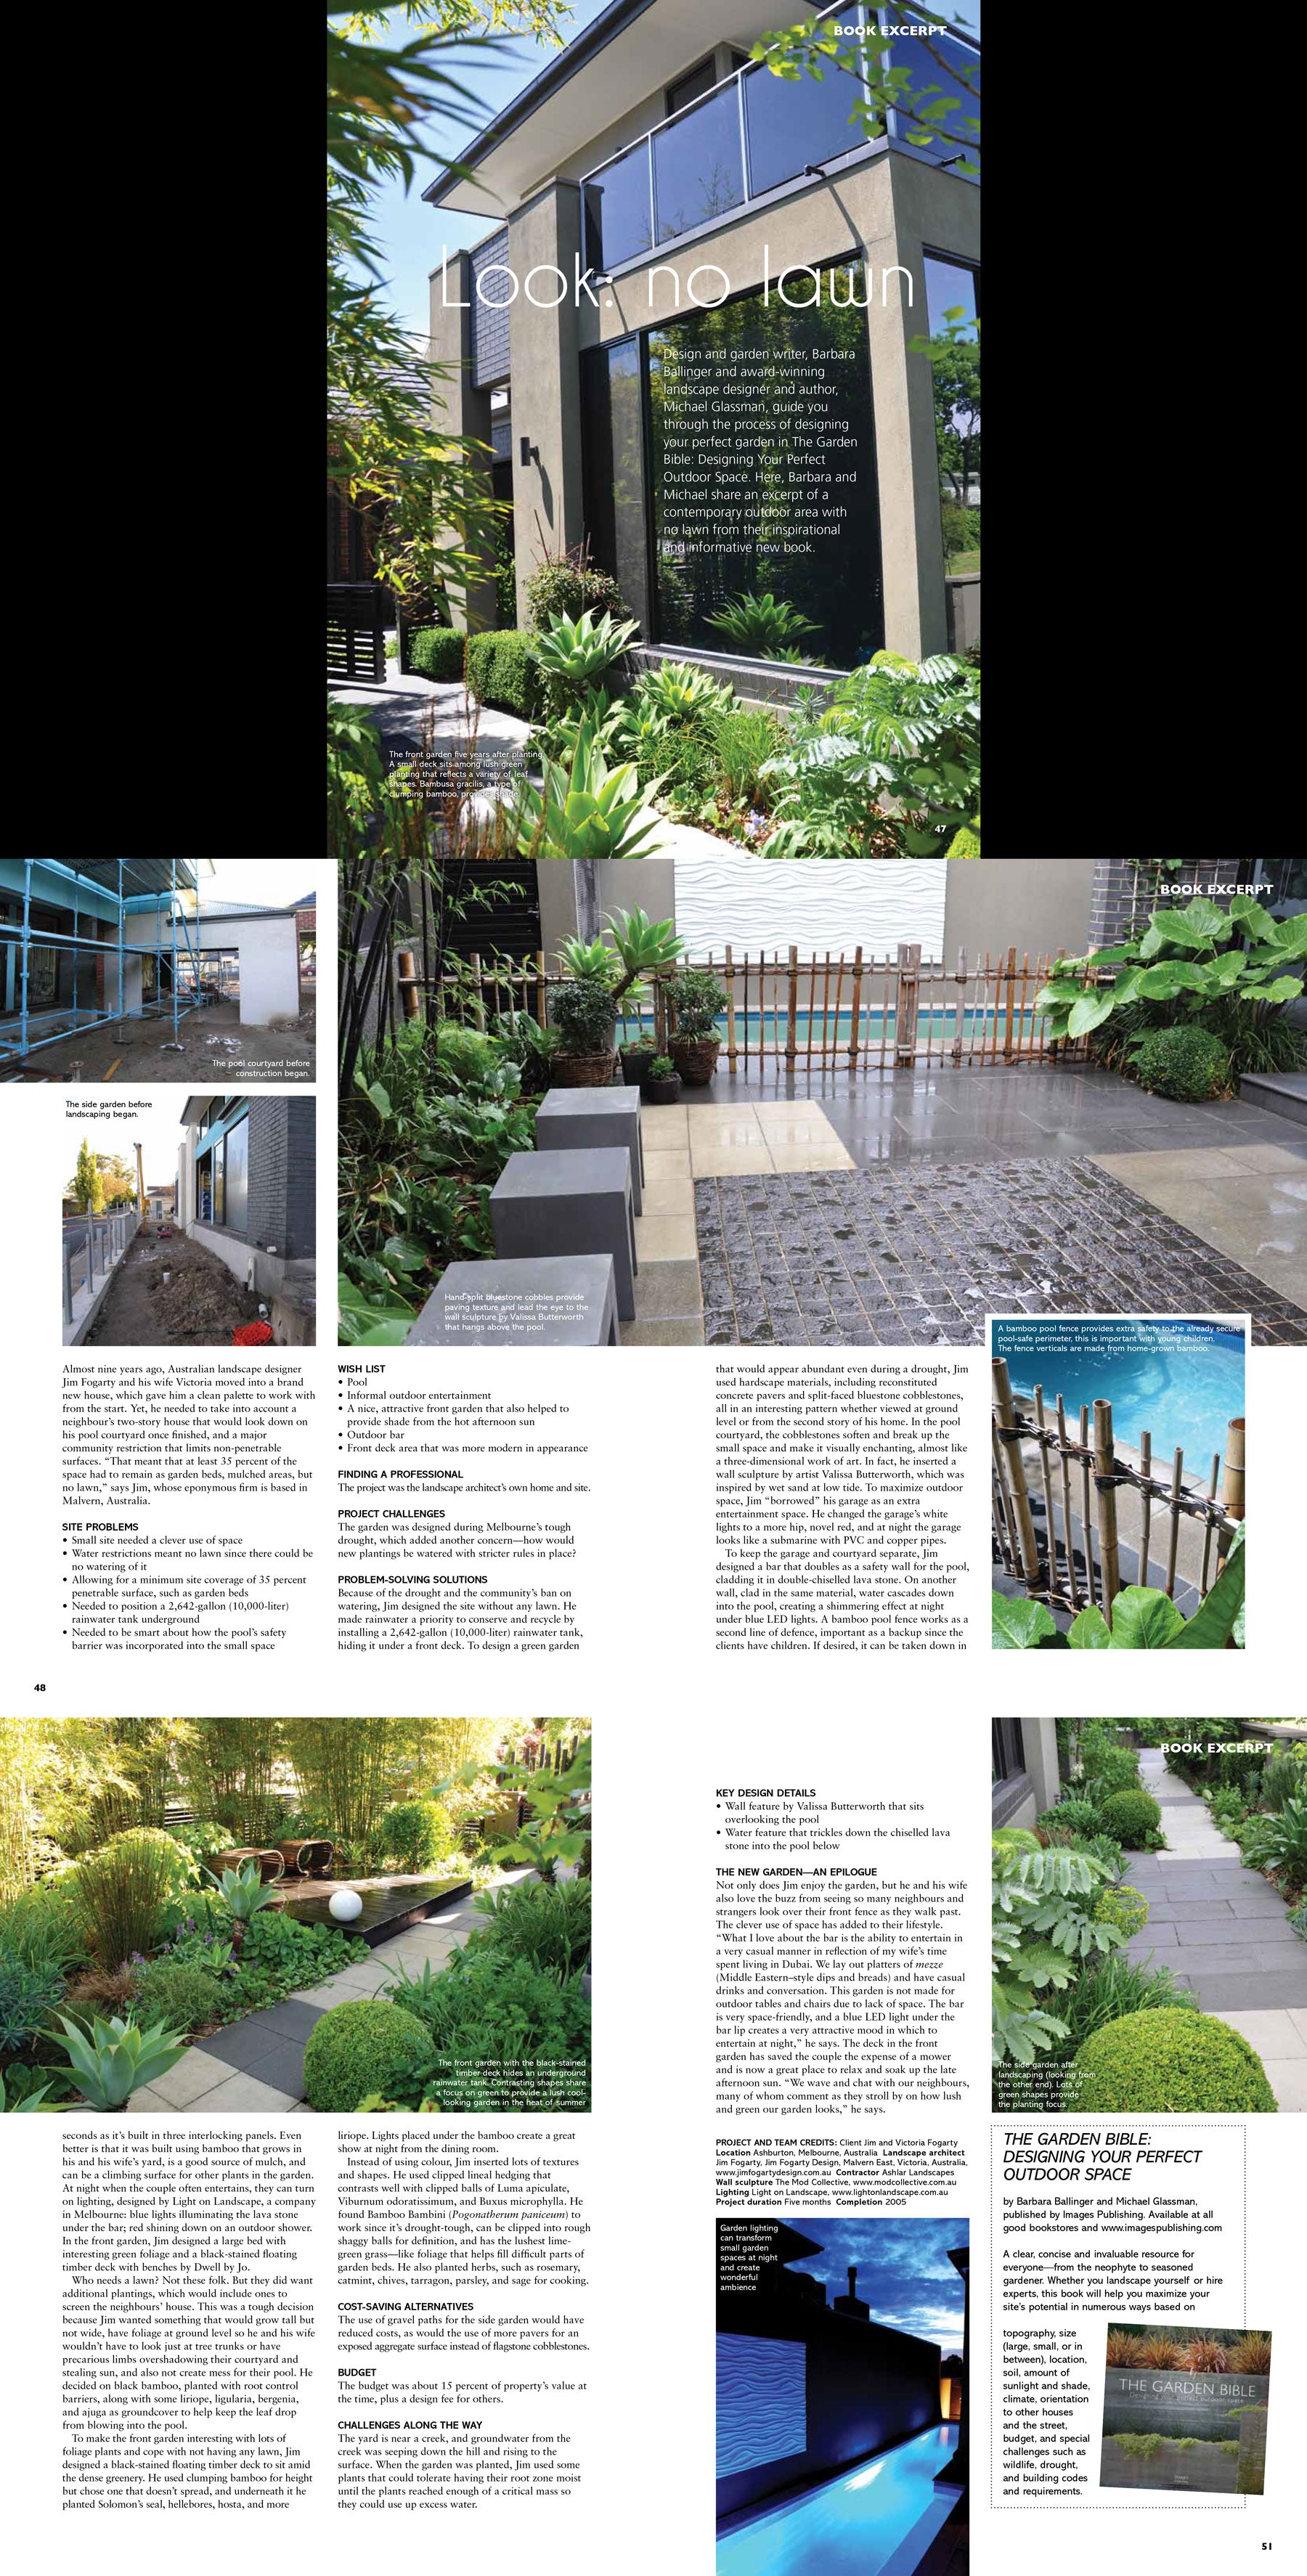 The Garden Bible Designing your perfect outdoor space Images